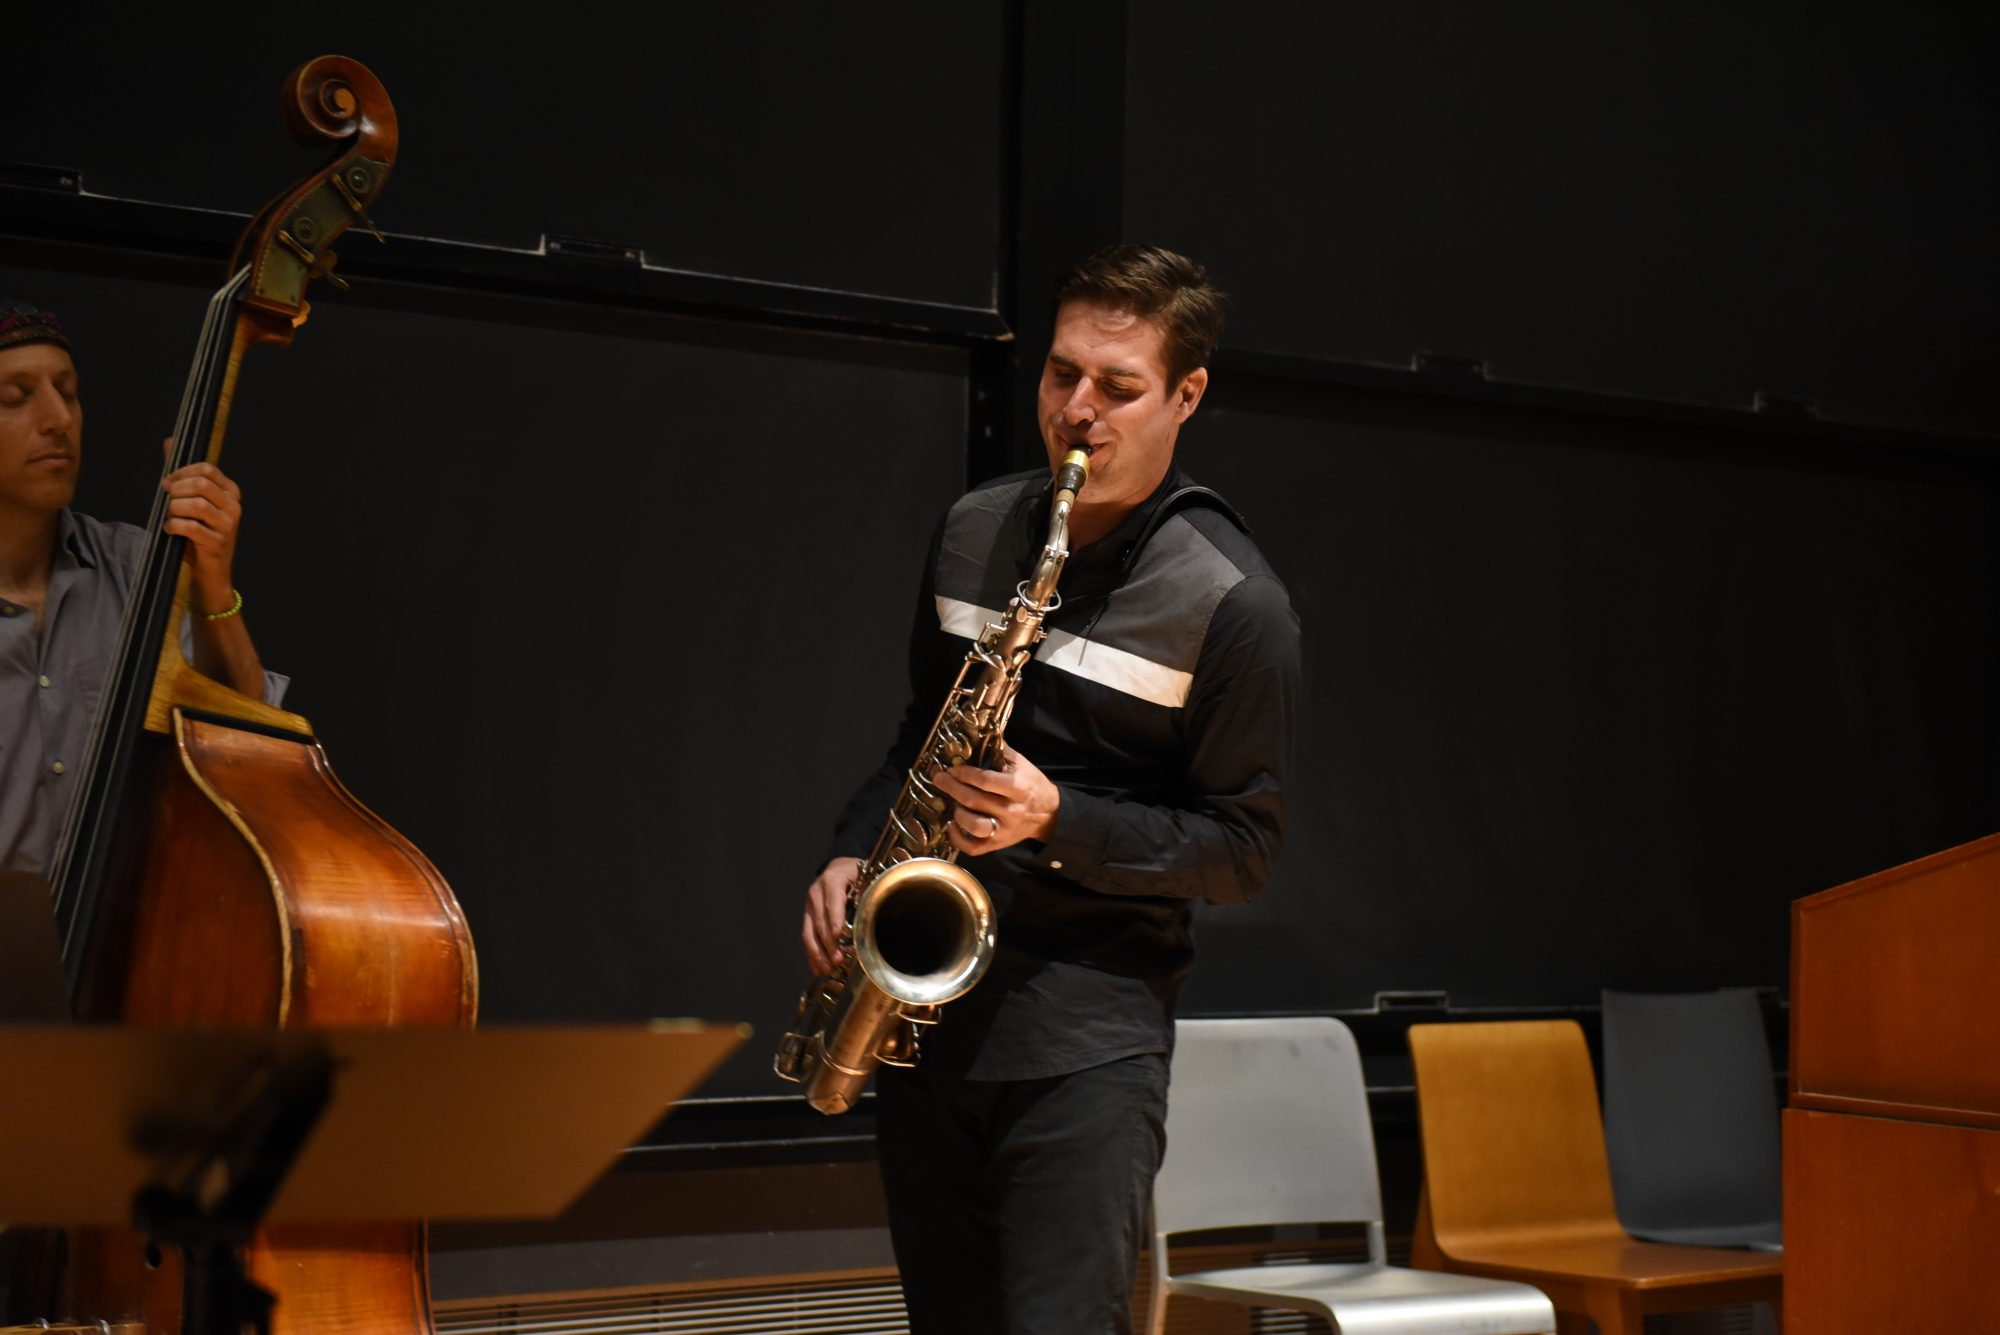 Saxophonist Chet Doxas performs at the Simons Center for the Tuesday Concert Series. (Photo by Cielo Castaneda)